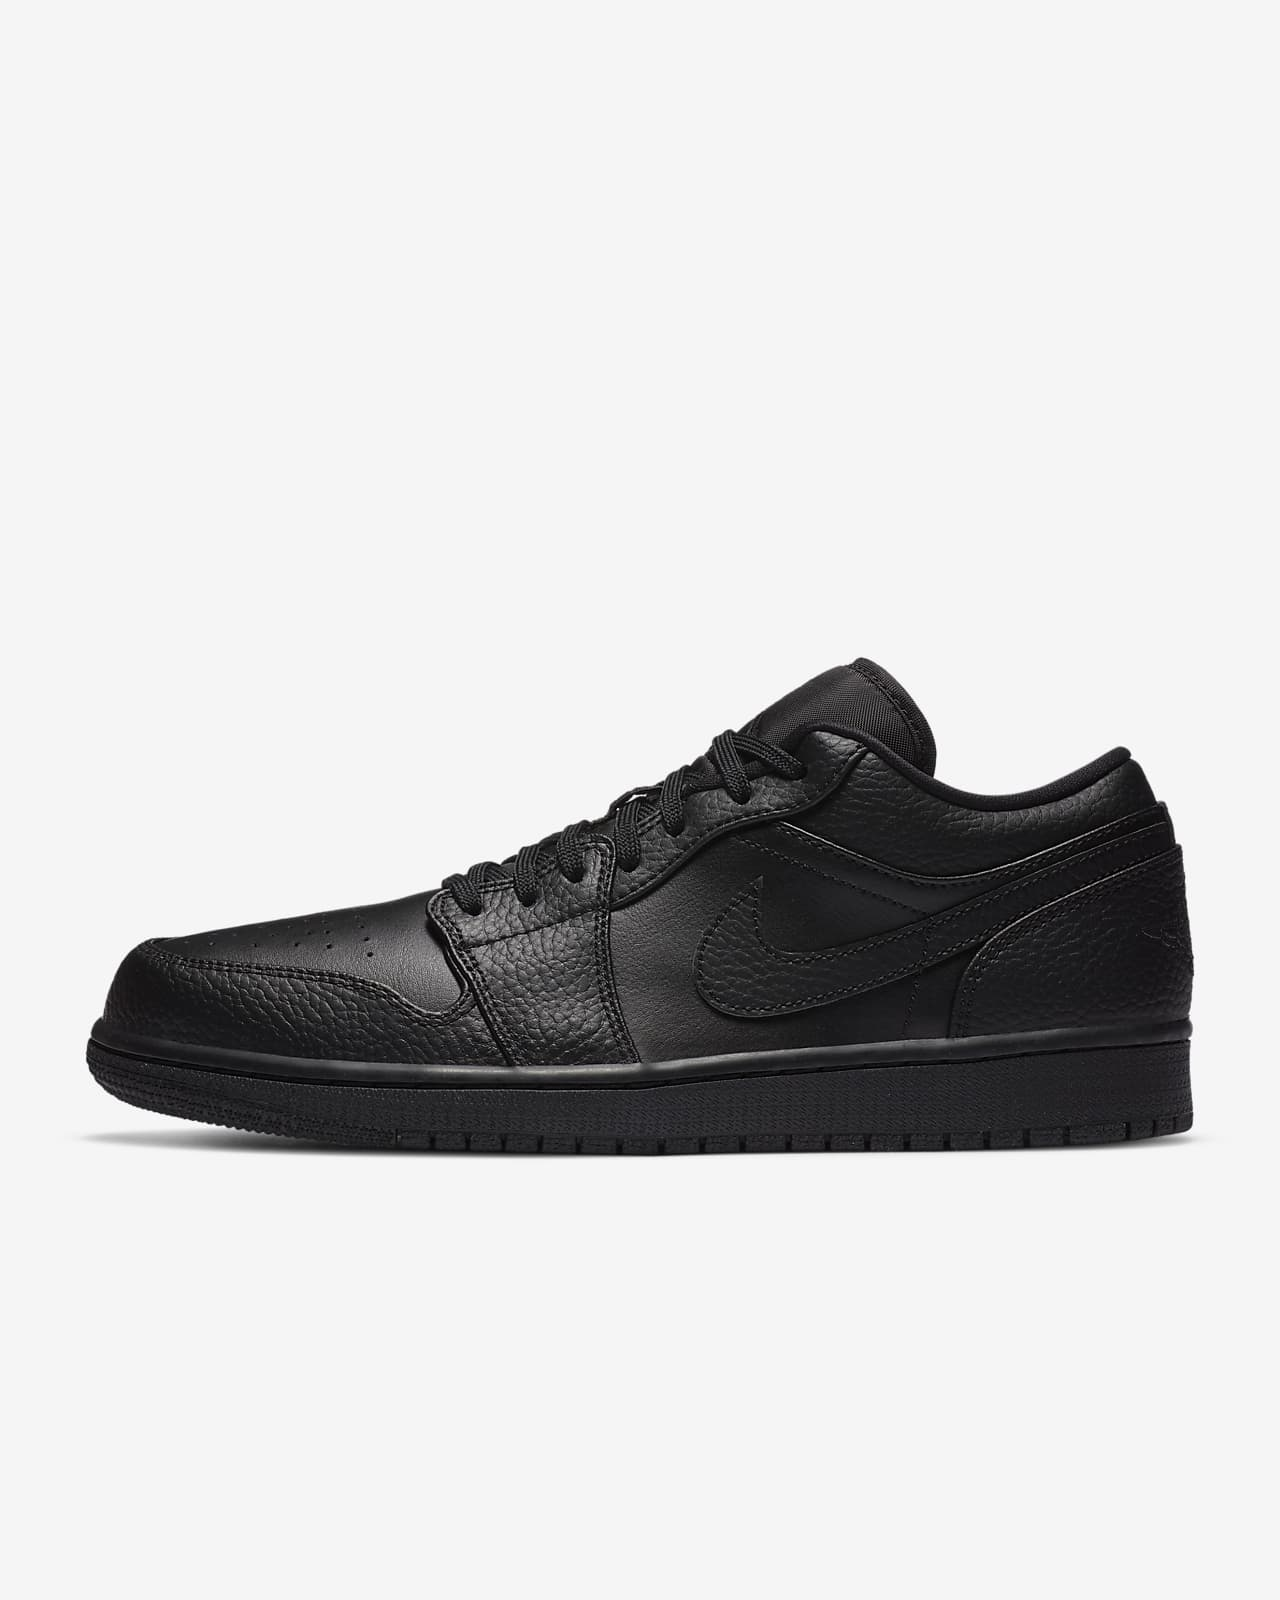 Air Jordan 1 Low Shoe Nike Lu